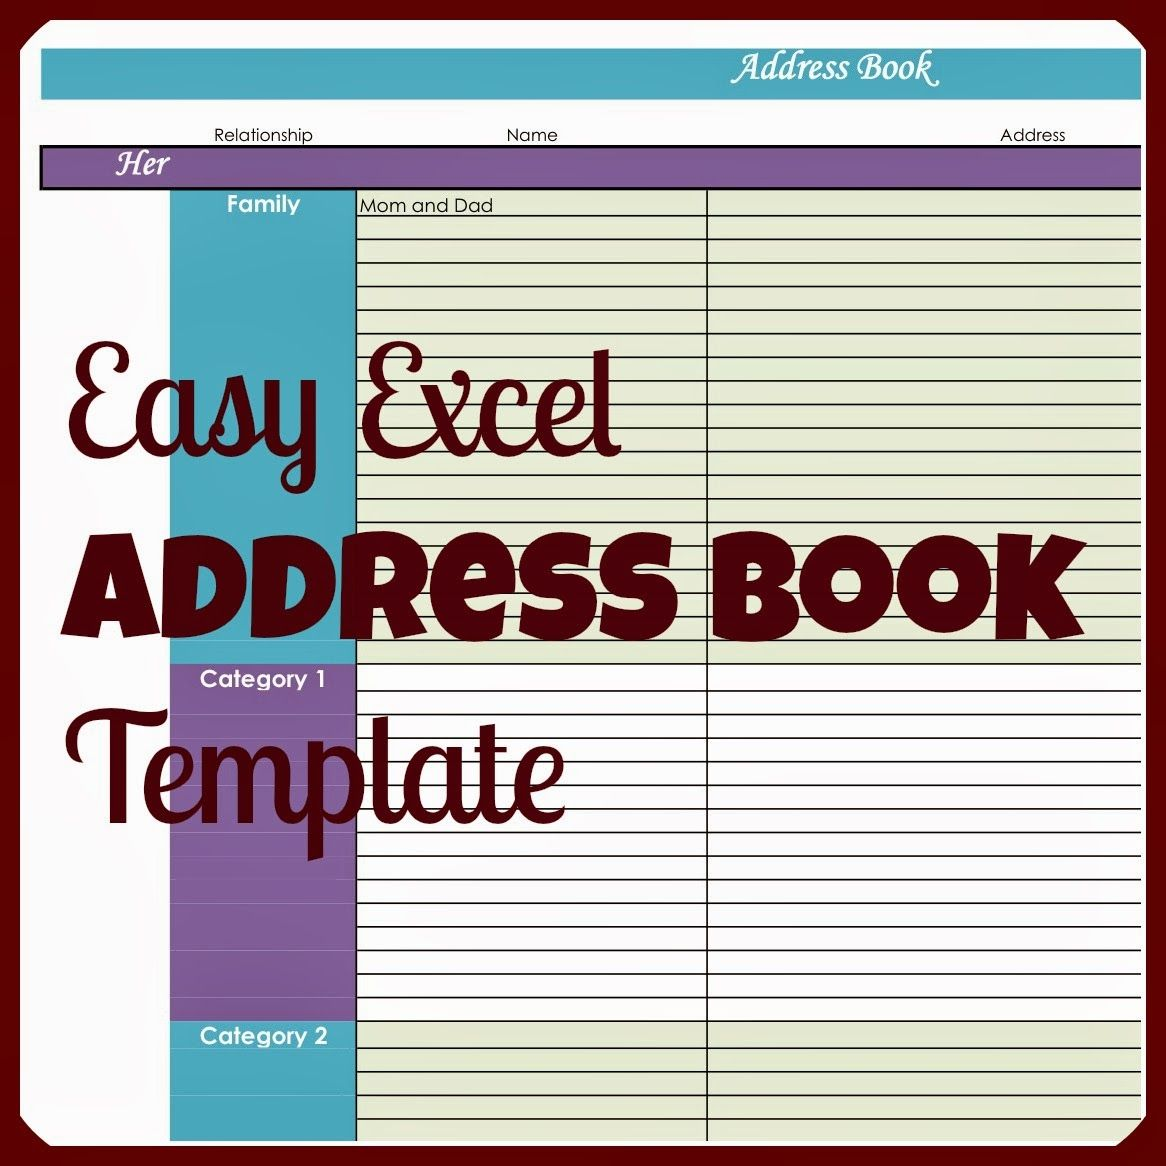 Easy Excel Address Book Template  Super Easy Template And Easy